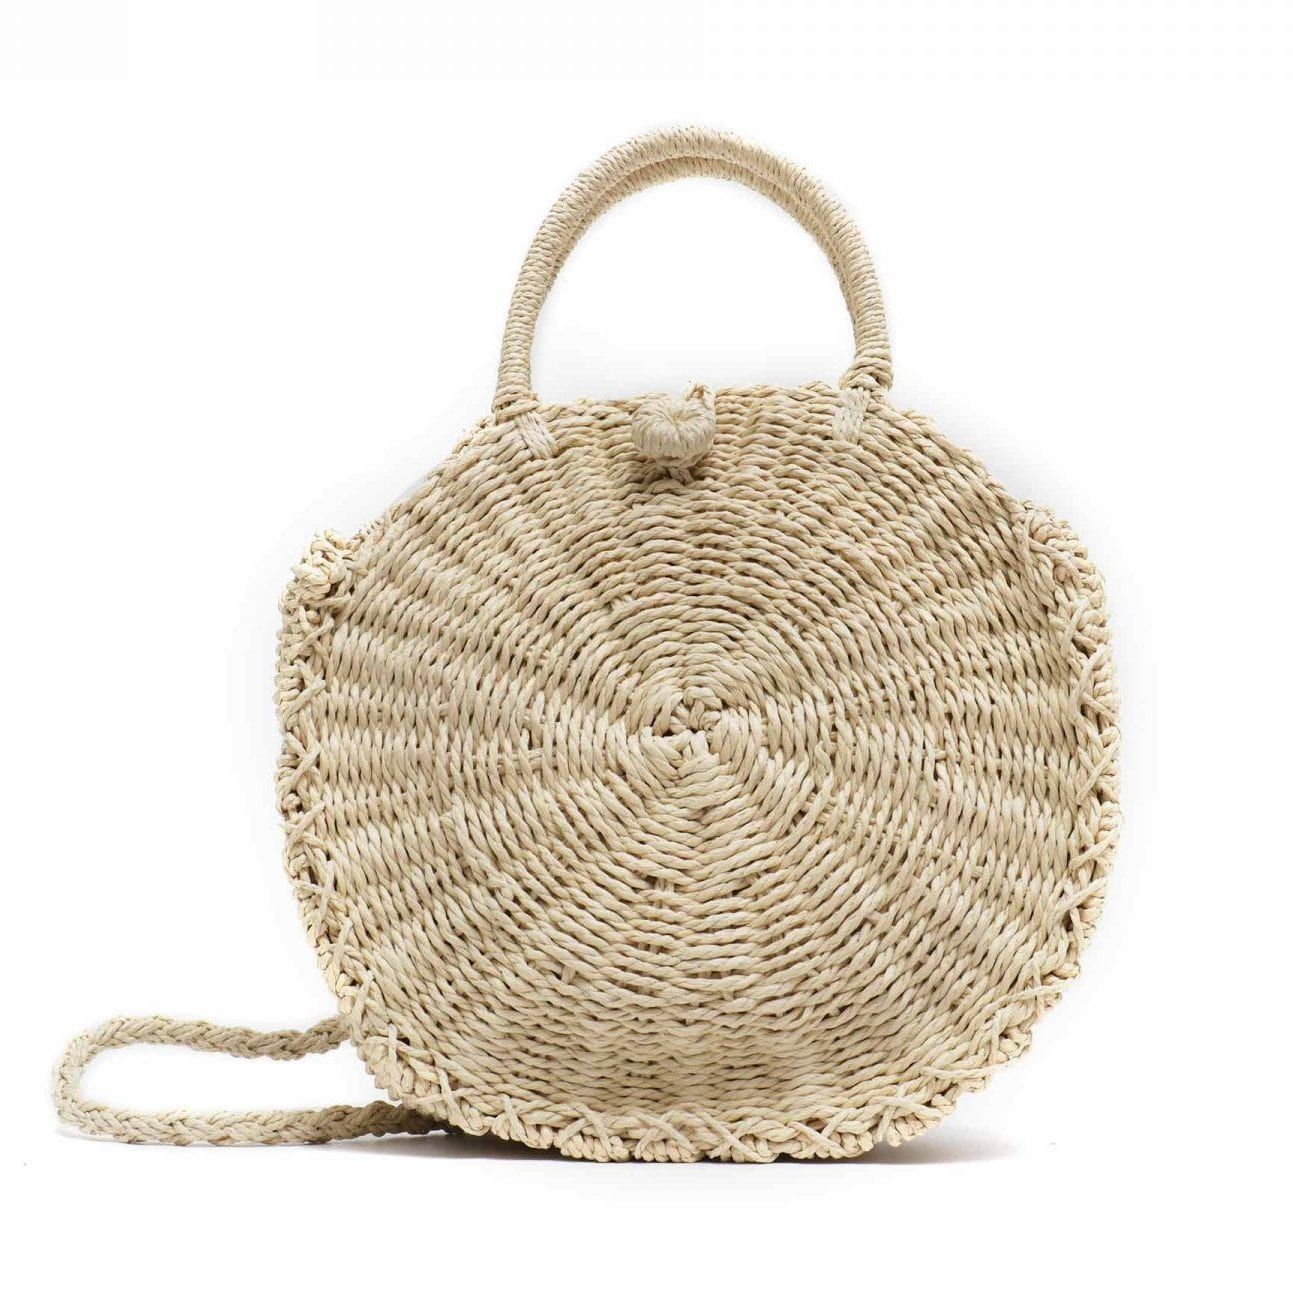 How long wicker handbag large best